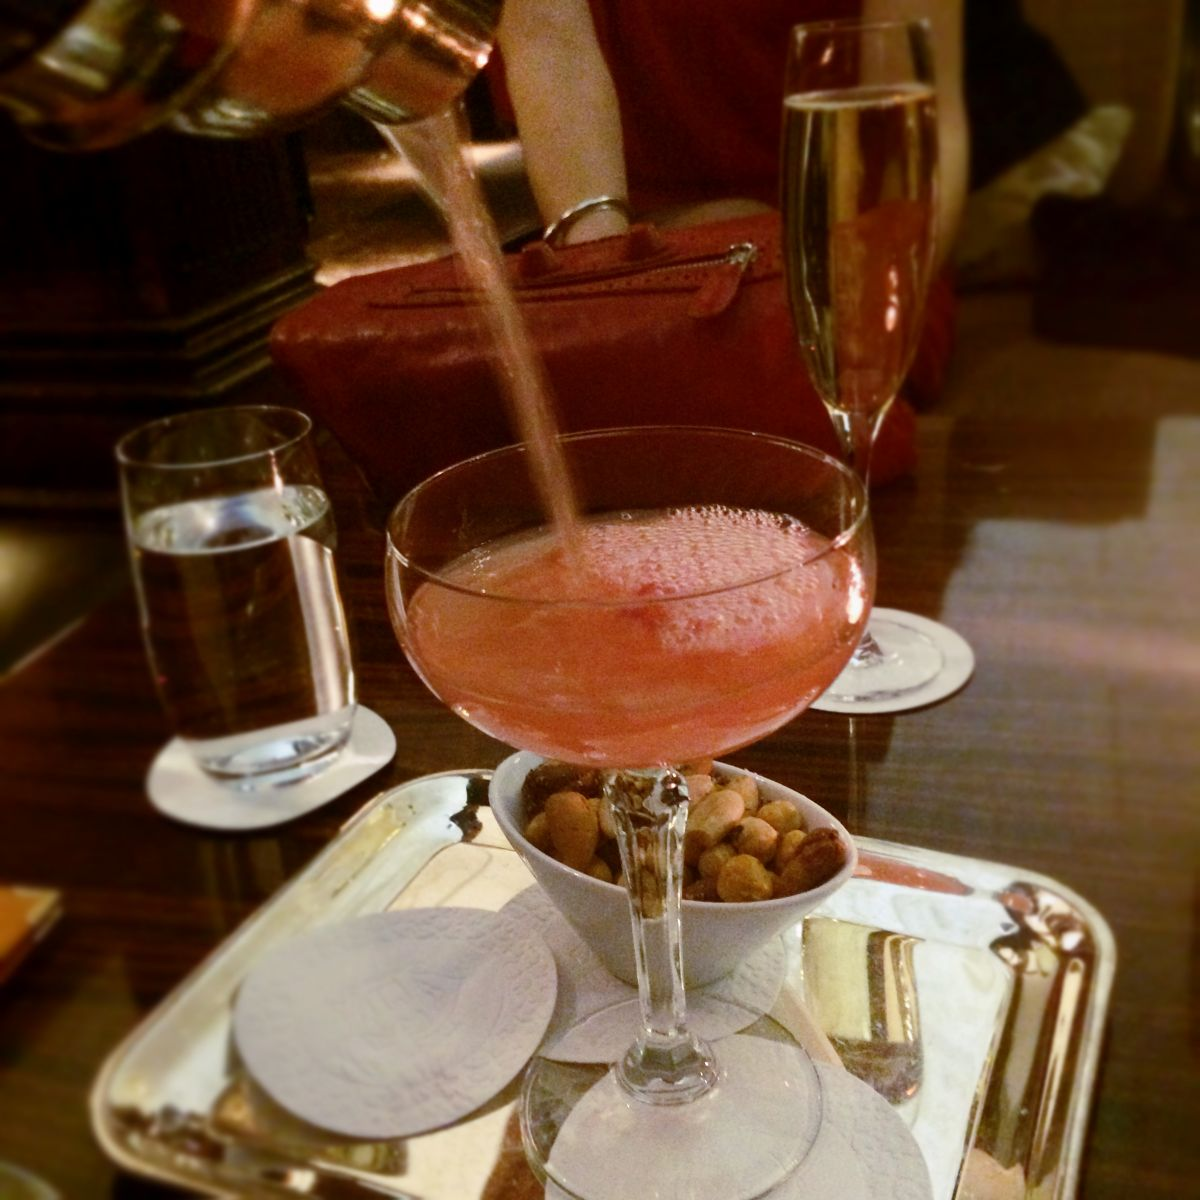 Spiced cocktail at the Cadier bar, Grand Hotel Stockholm